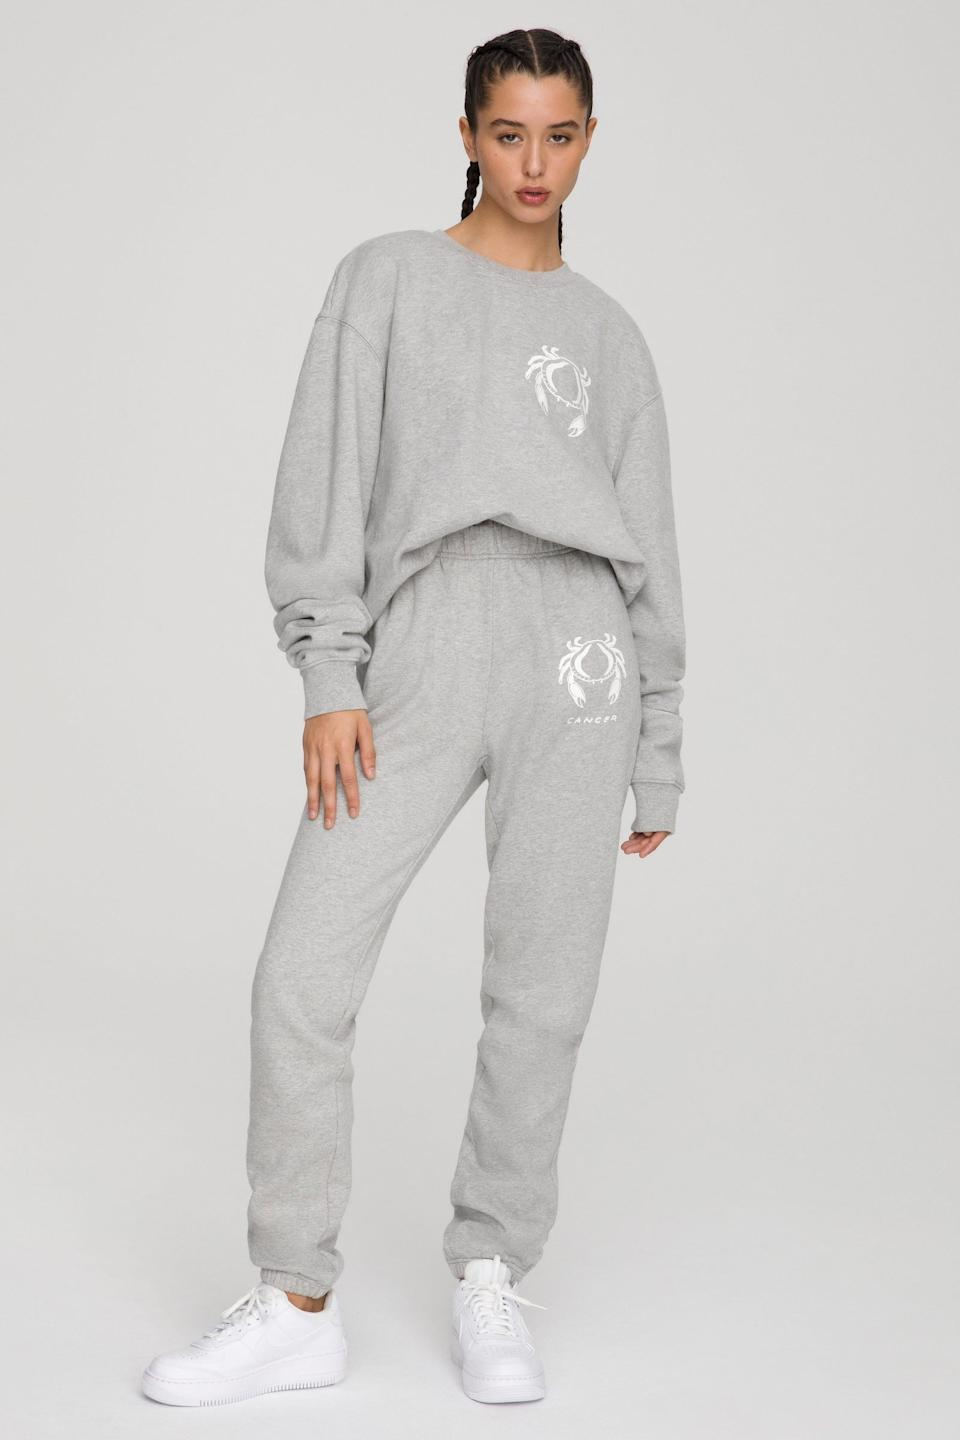 The Cancer Boyfriend Sweatshirt and the Cancer Boyfriend Sweatpants from Good American.